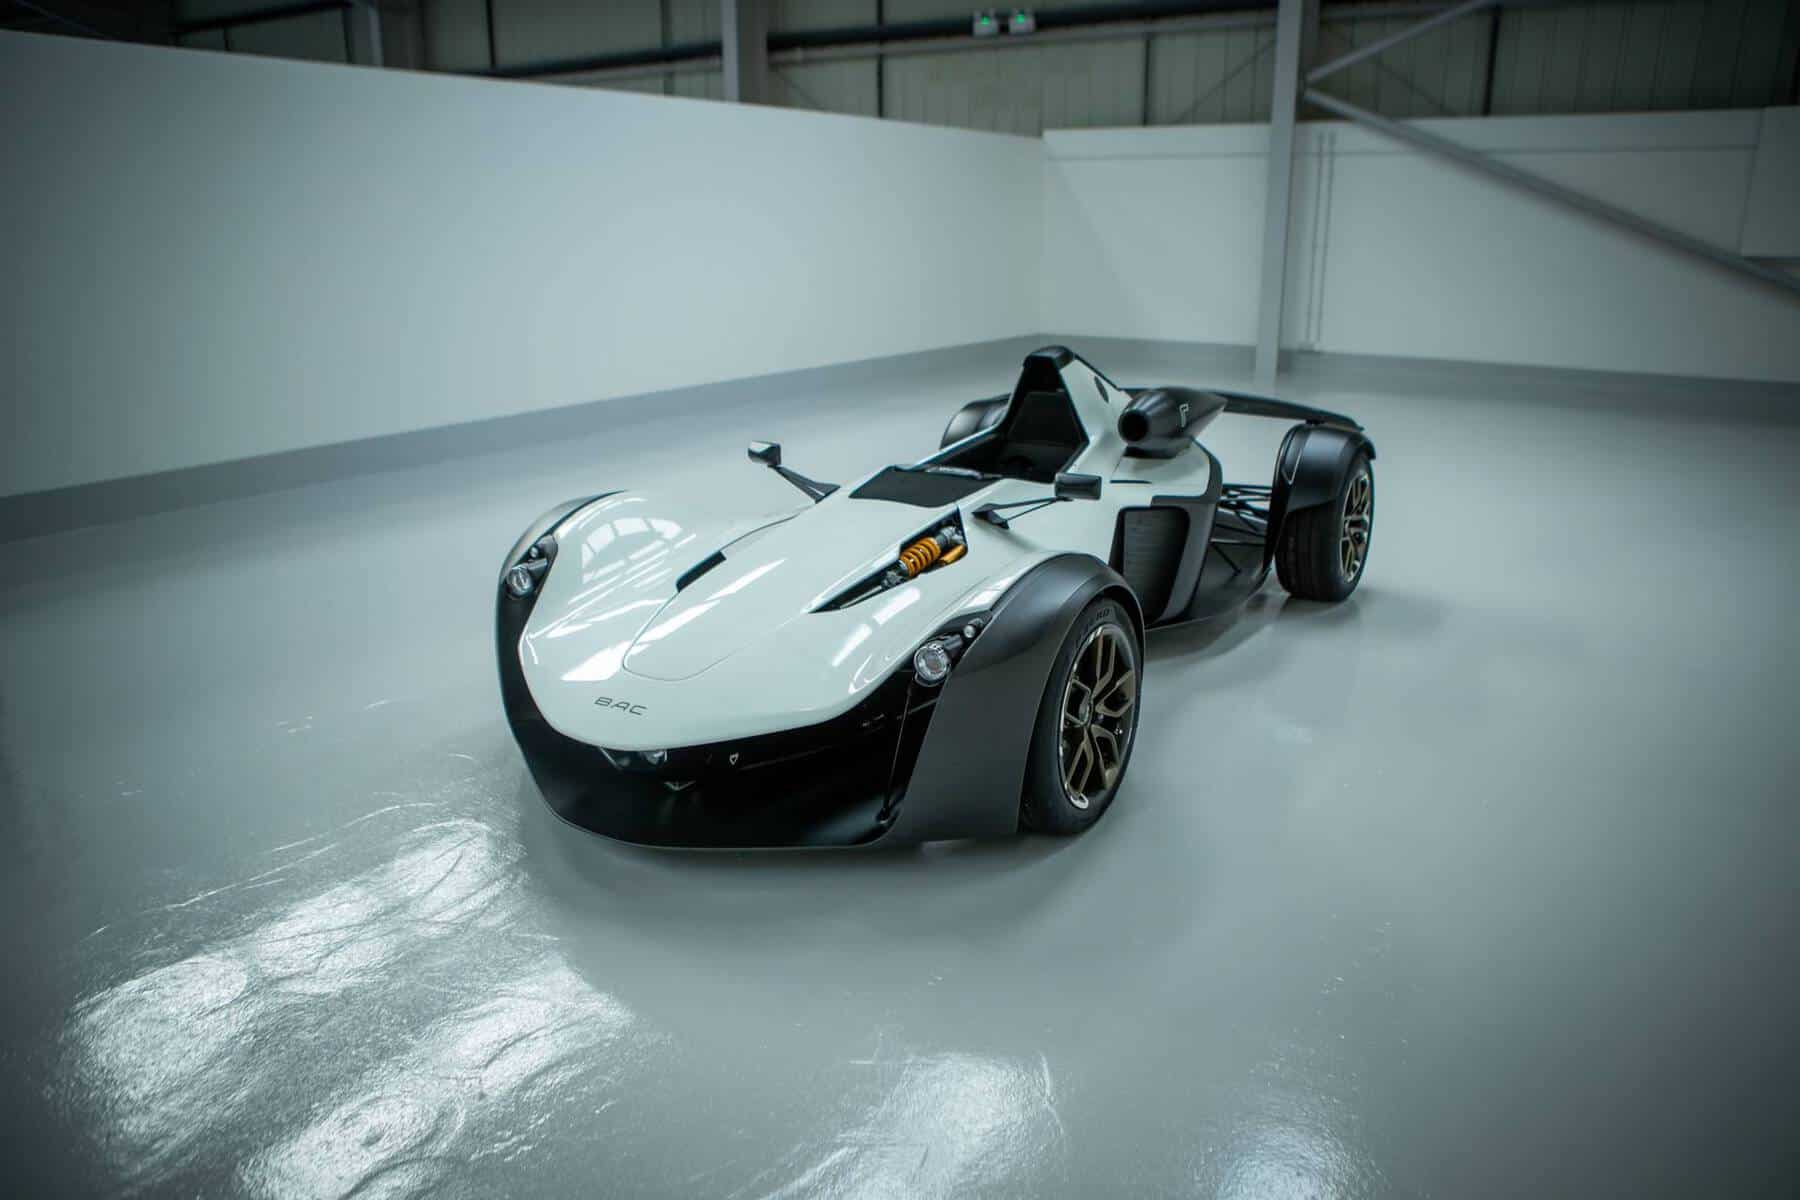 The BAC Mono R Brings Some Nice Upgrades to the Iconic Mono